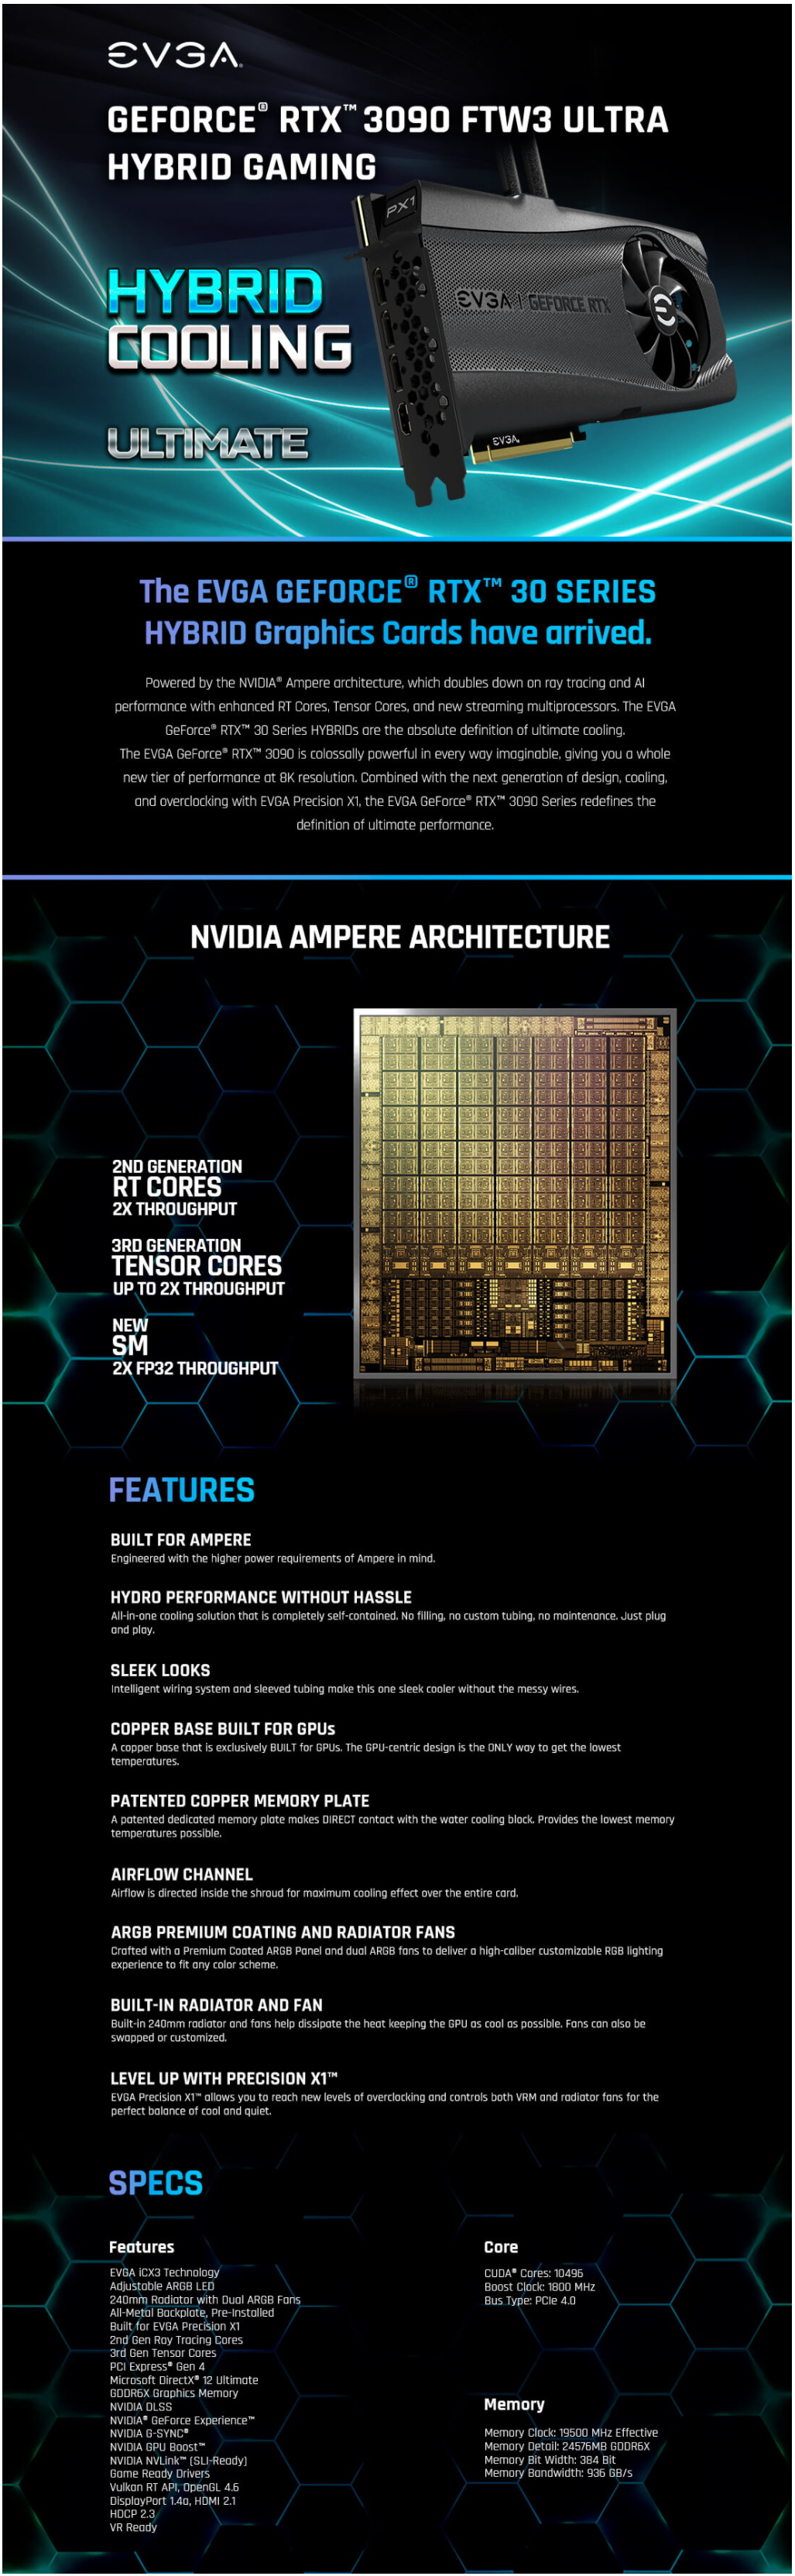 A large marketing image providing additional information about the product eVGA GeForce RTX 3090 FTW3 Hybrid Ultra 24GB GDDR6X - Additional alt info not provided